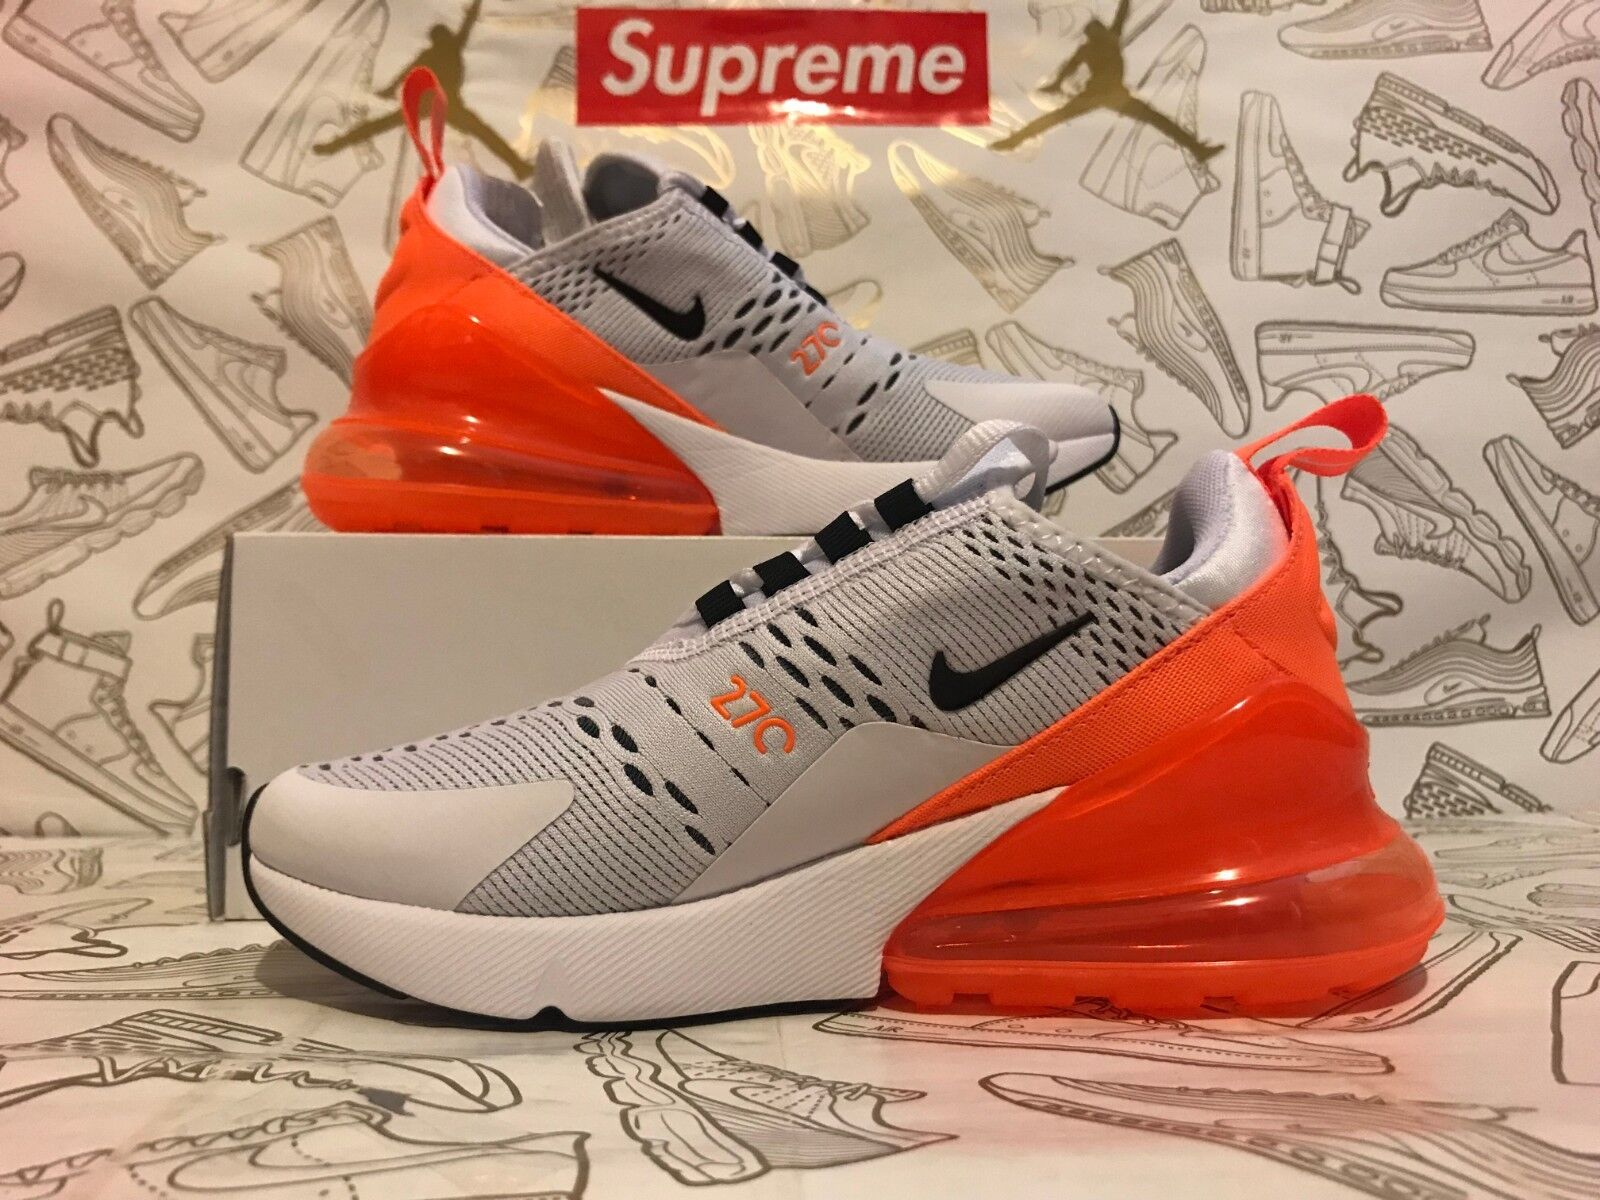 low priced c4aa5 ec6c0 Authentic Women s Nike Air Max 270 270 270 White Total Orange Black AH6789-